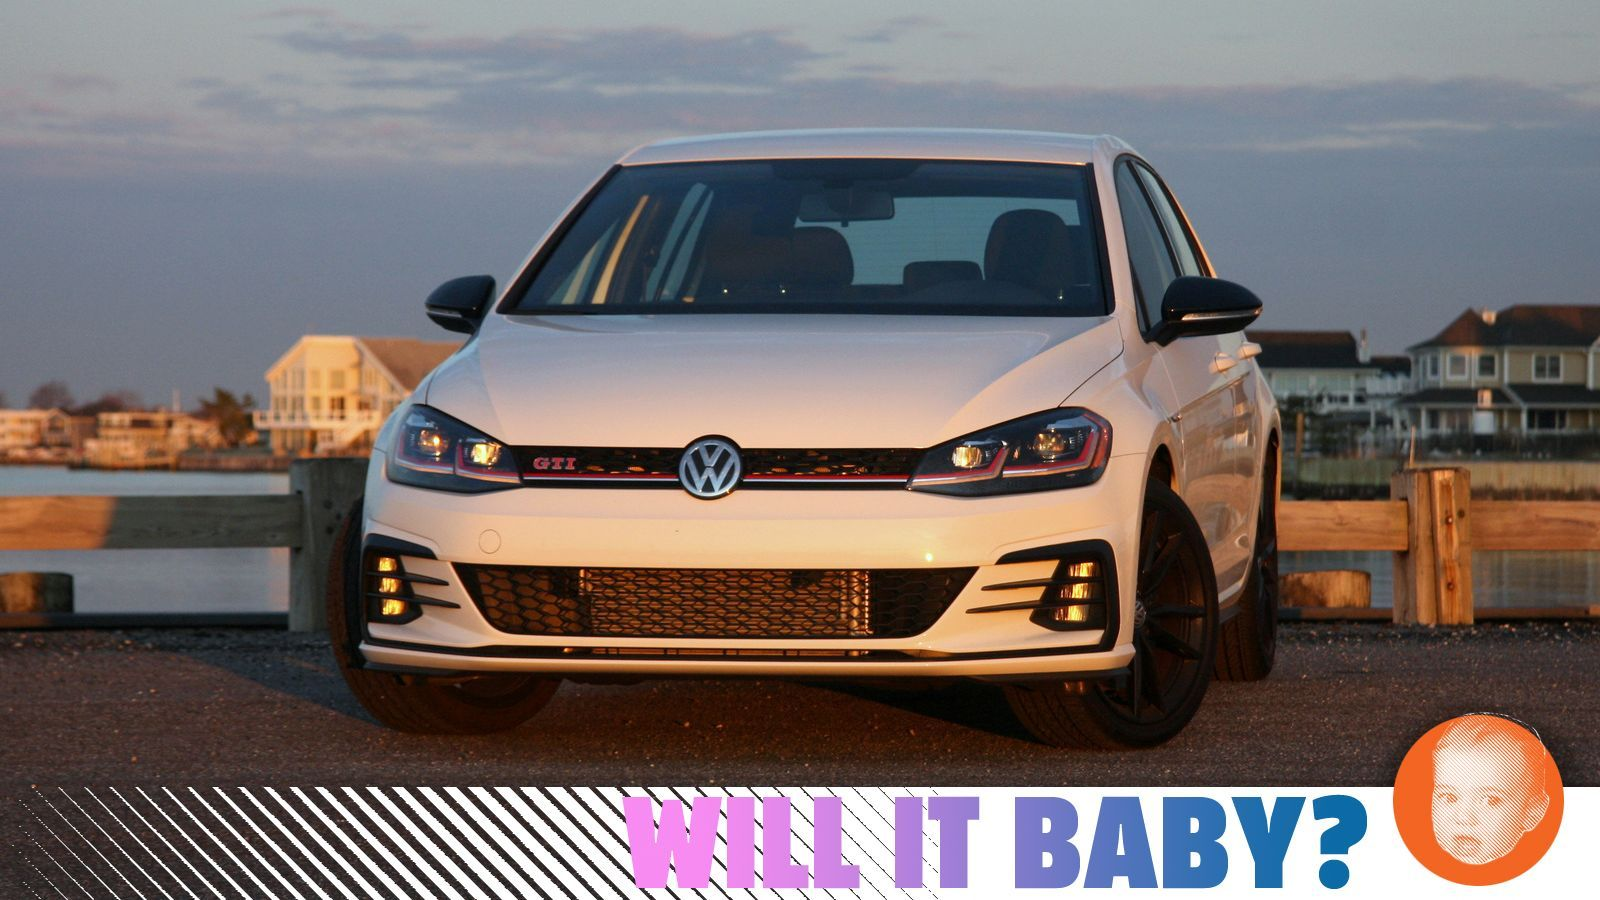 Willitbaby Volkswagengti The 2019 Volkswagen Gti Rabbit Edition